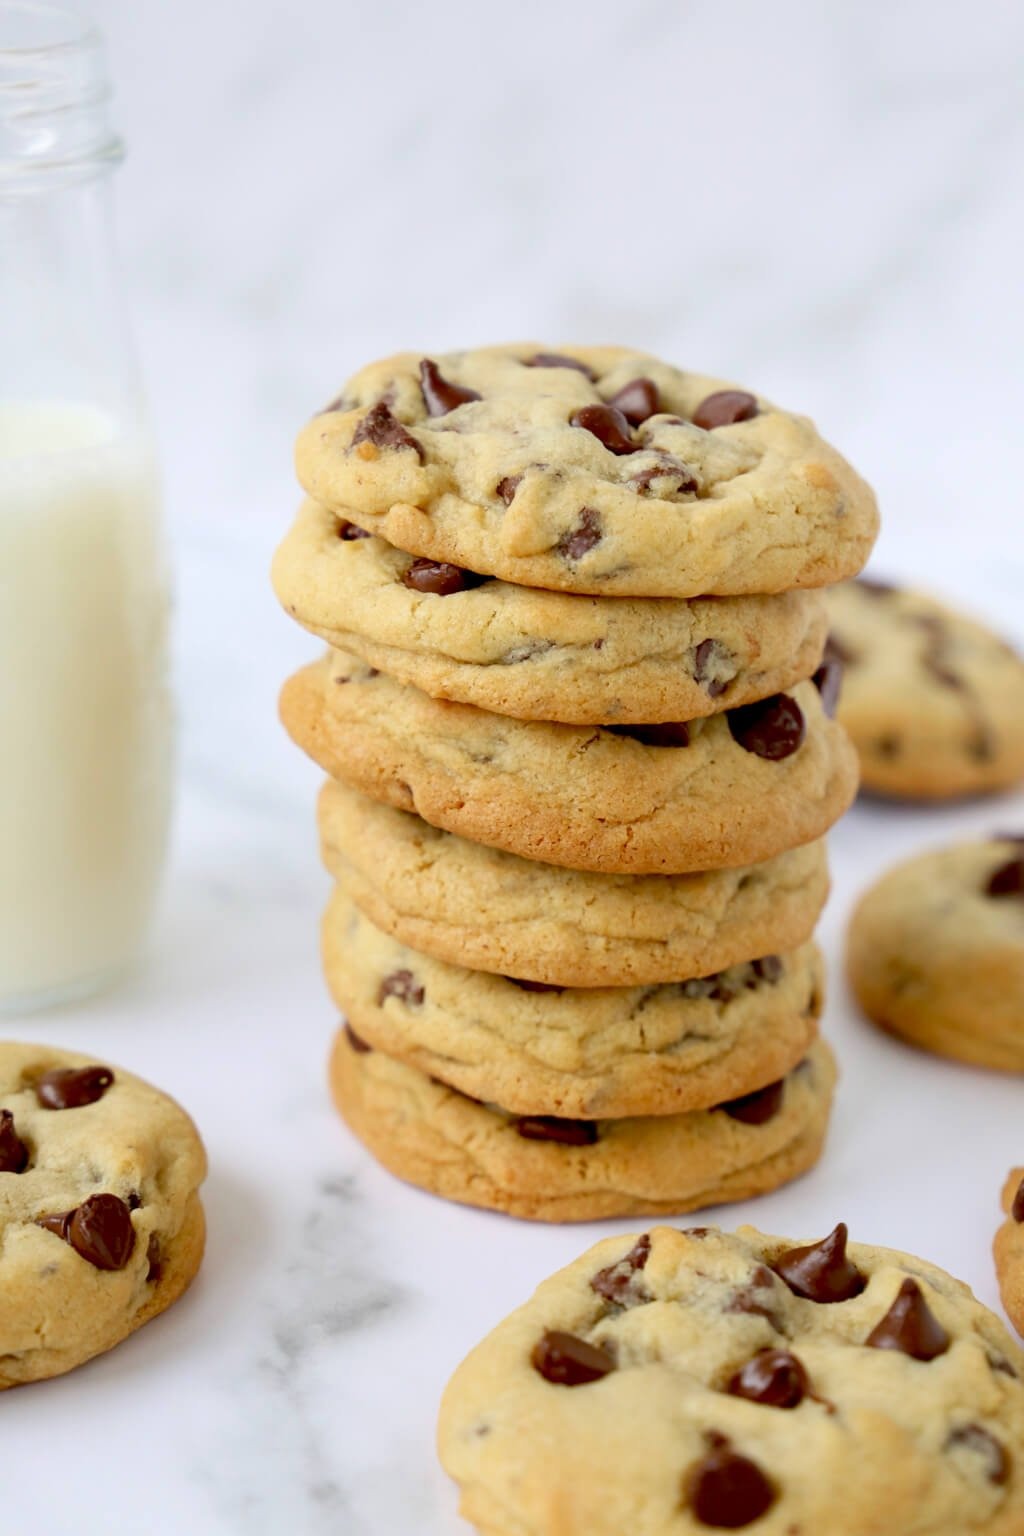 a stack of six chocolate chip cookies in front of a glass of milk